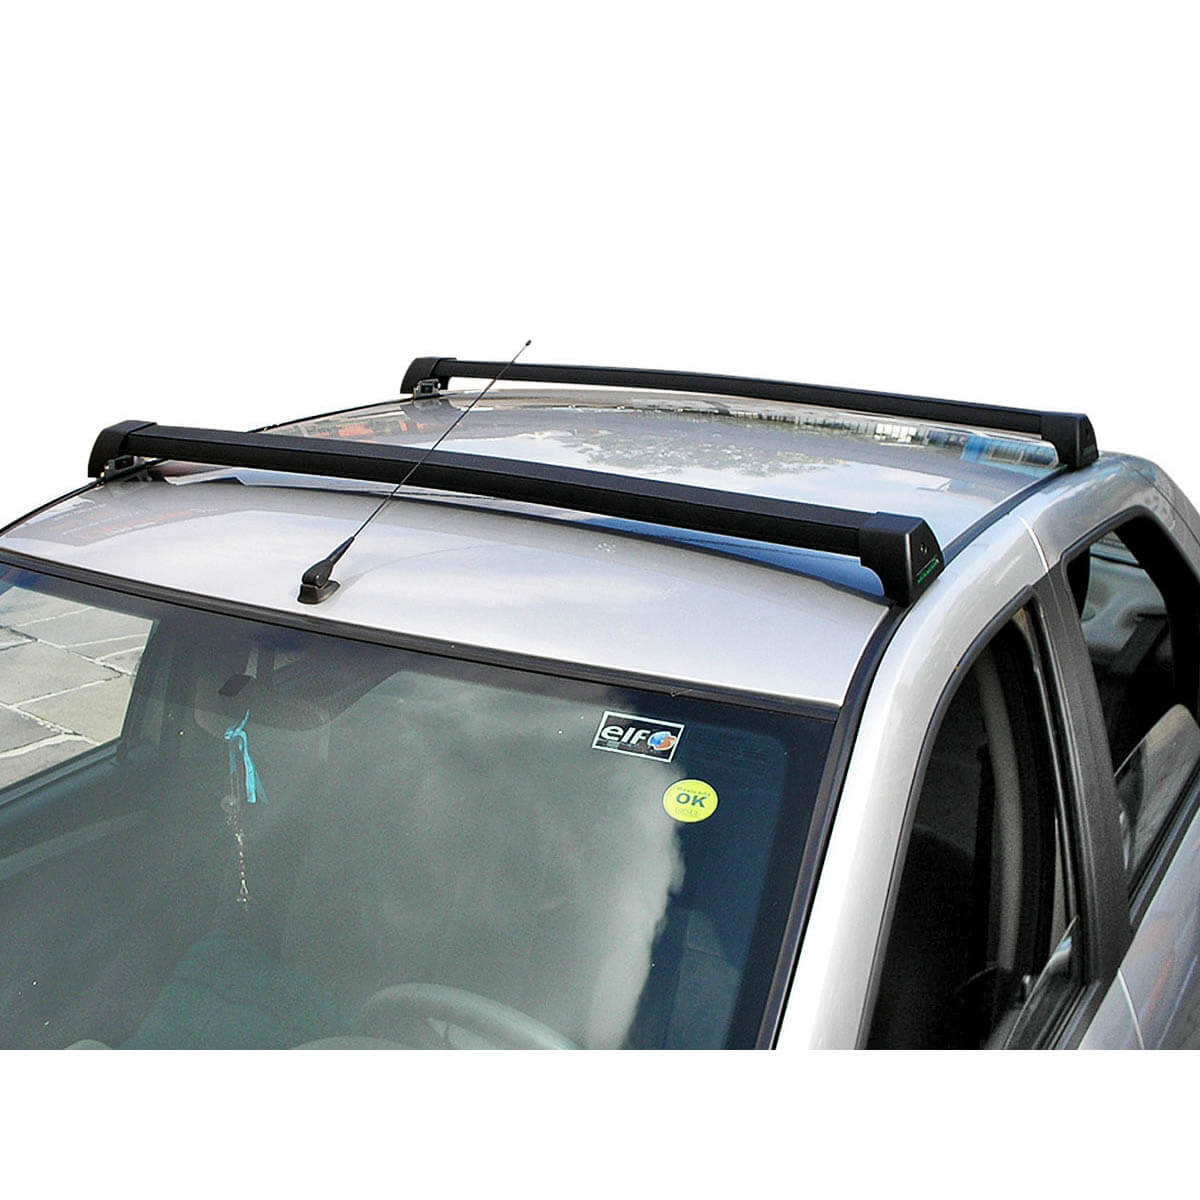 Rack de teto C4 Picasso 2009 a 2014 Long Life Sports preto